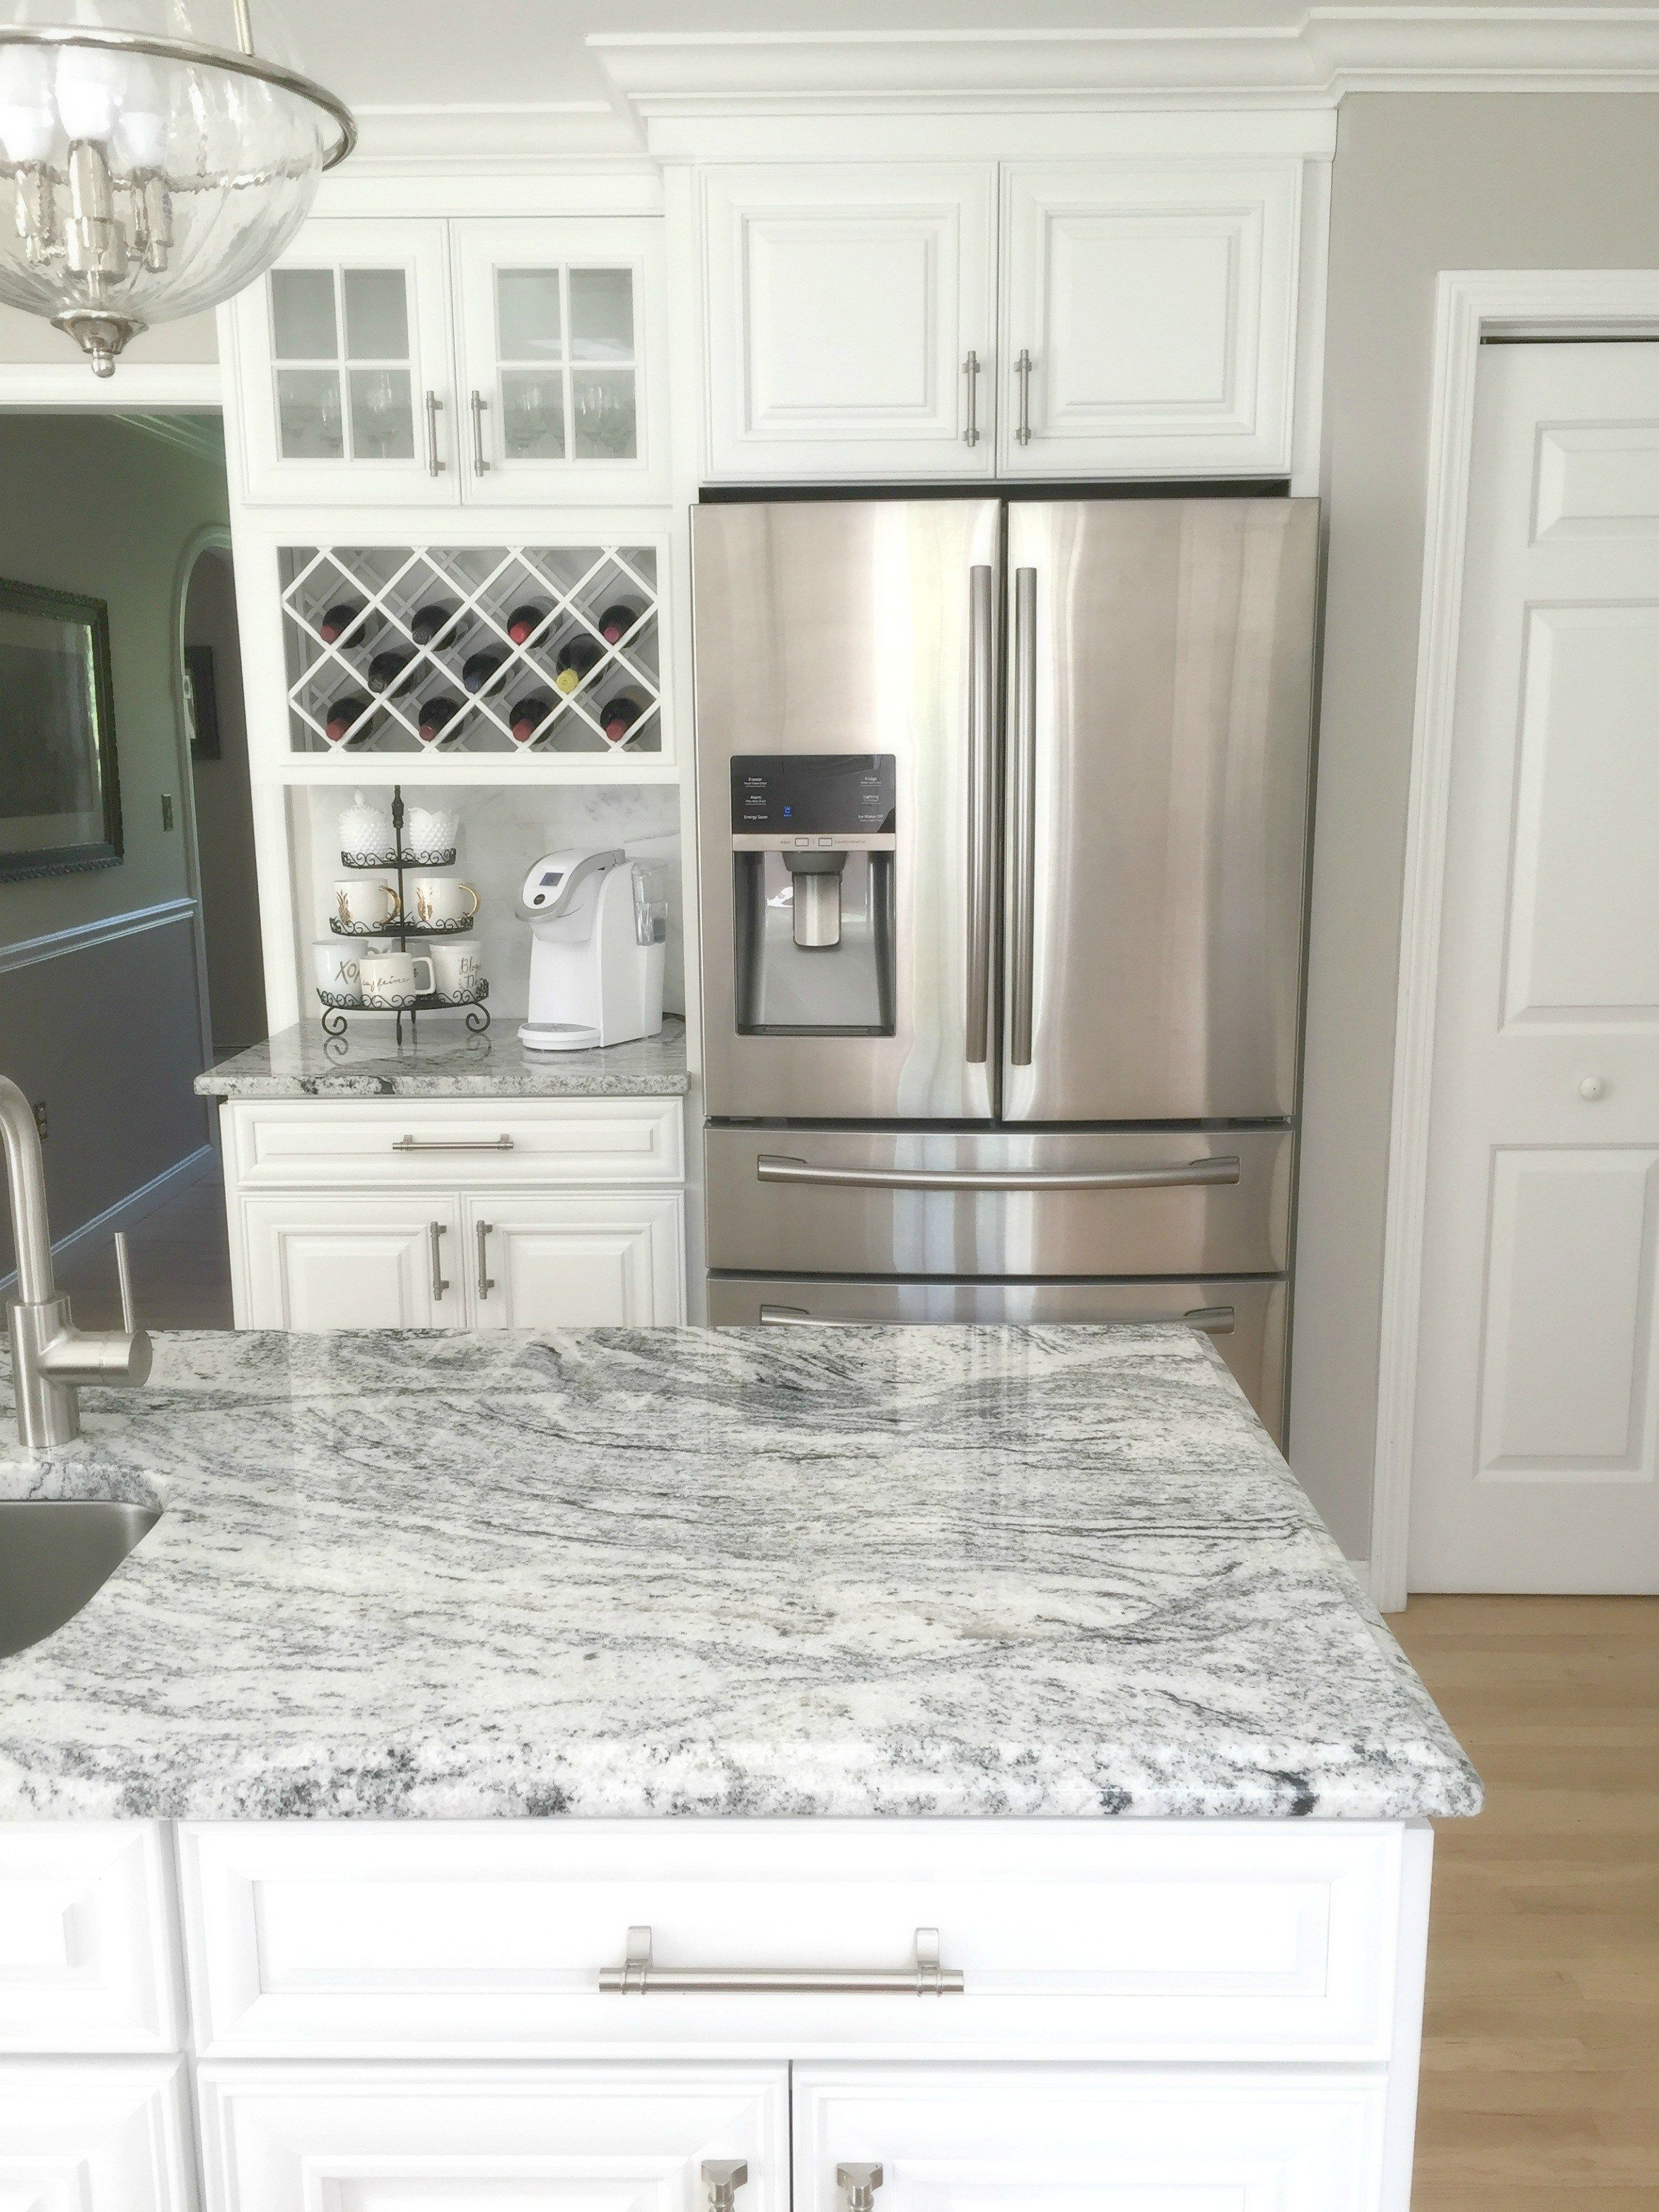 Incroyable Transitional Kitchens Must Haves. Viscon White Granite Countertops.